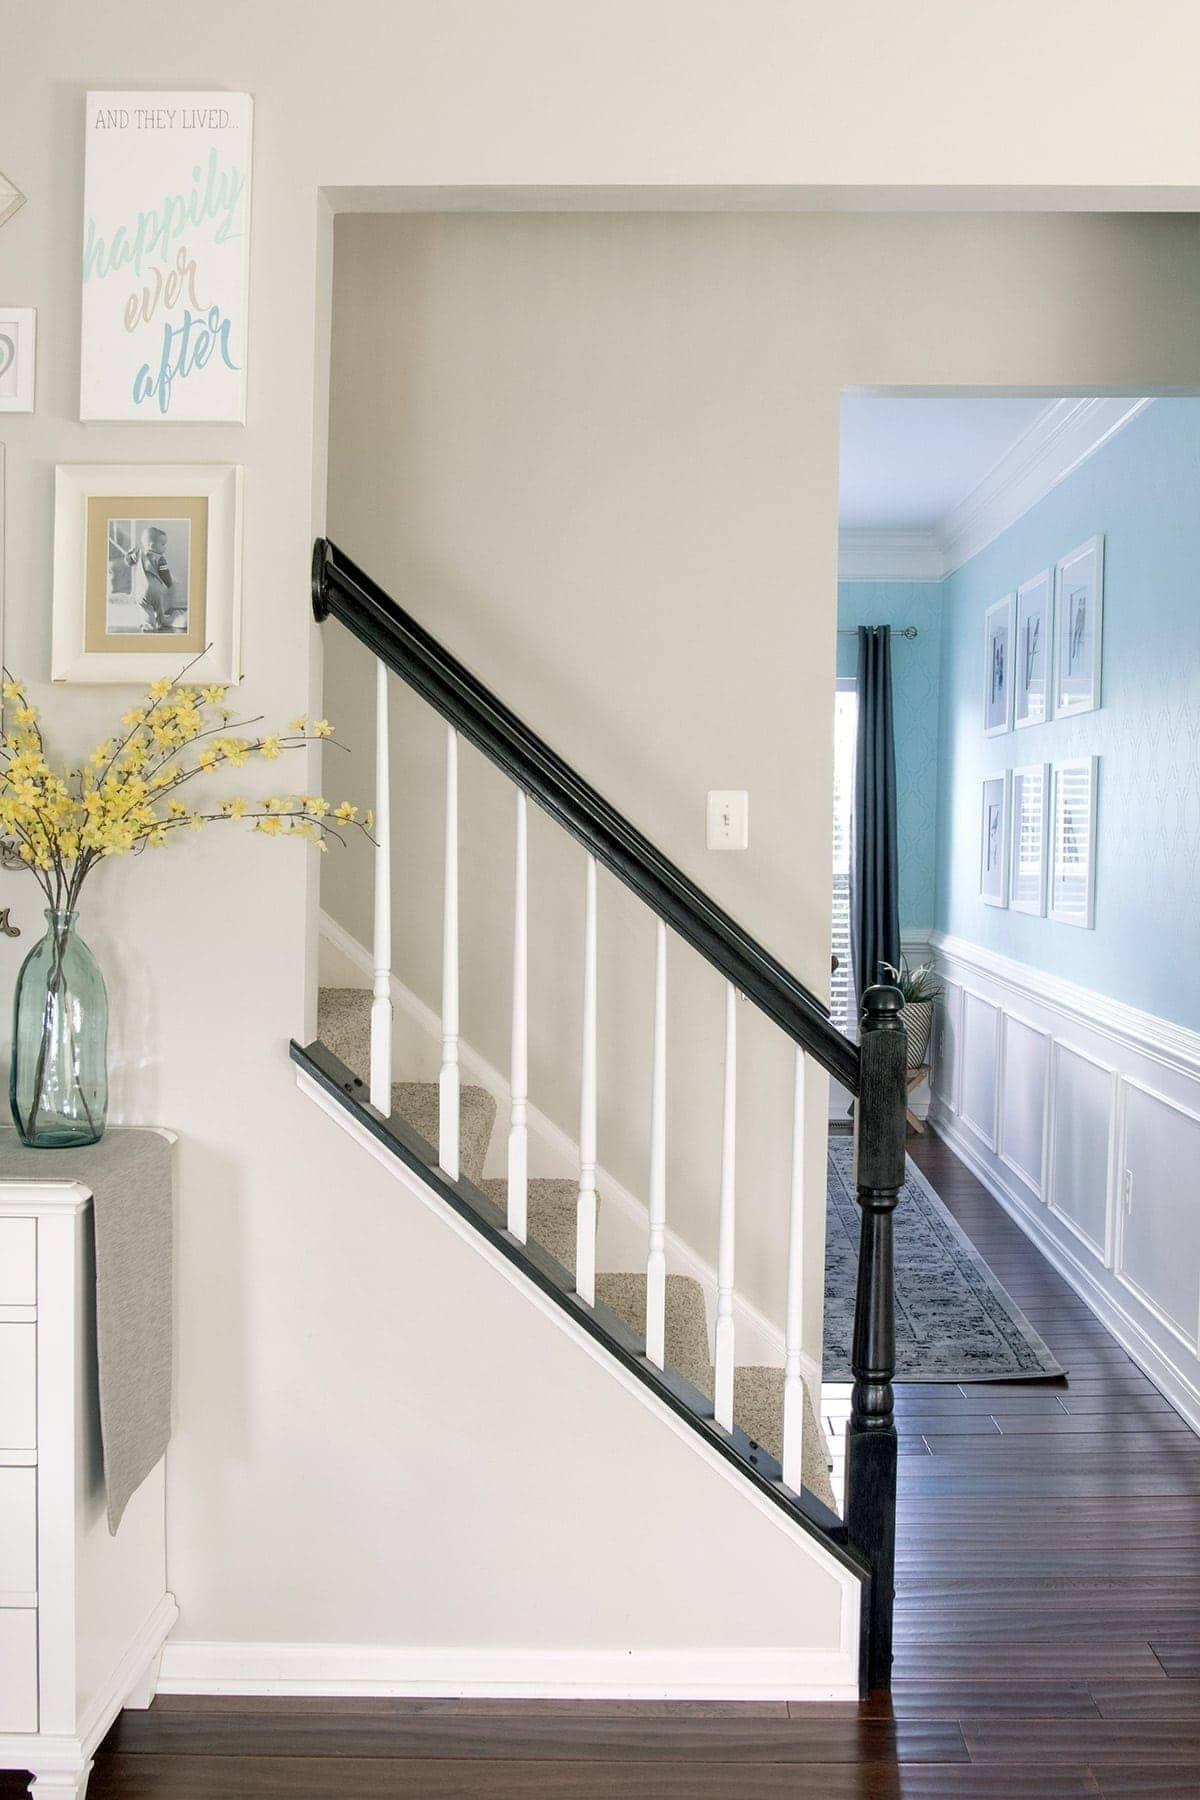 Completed oak painted stair railing with black handrail and white balusters.